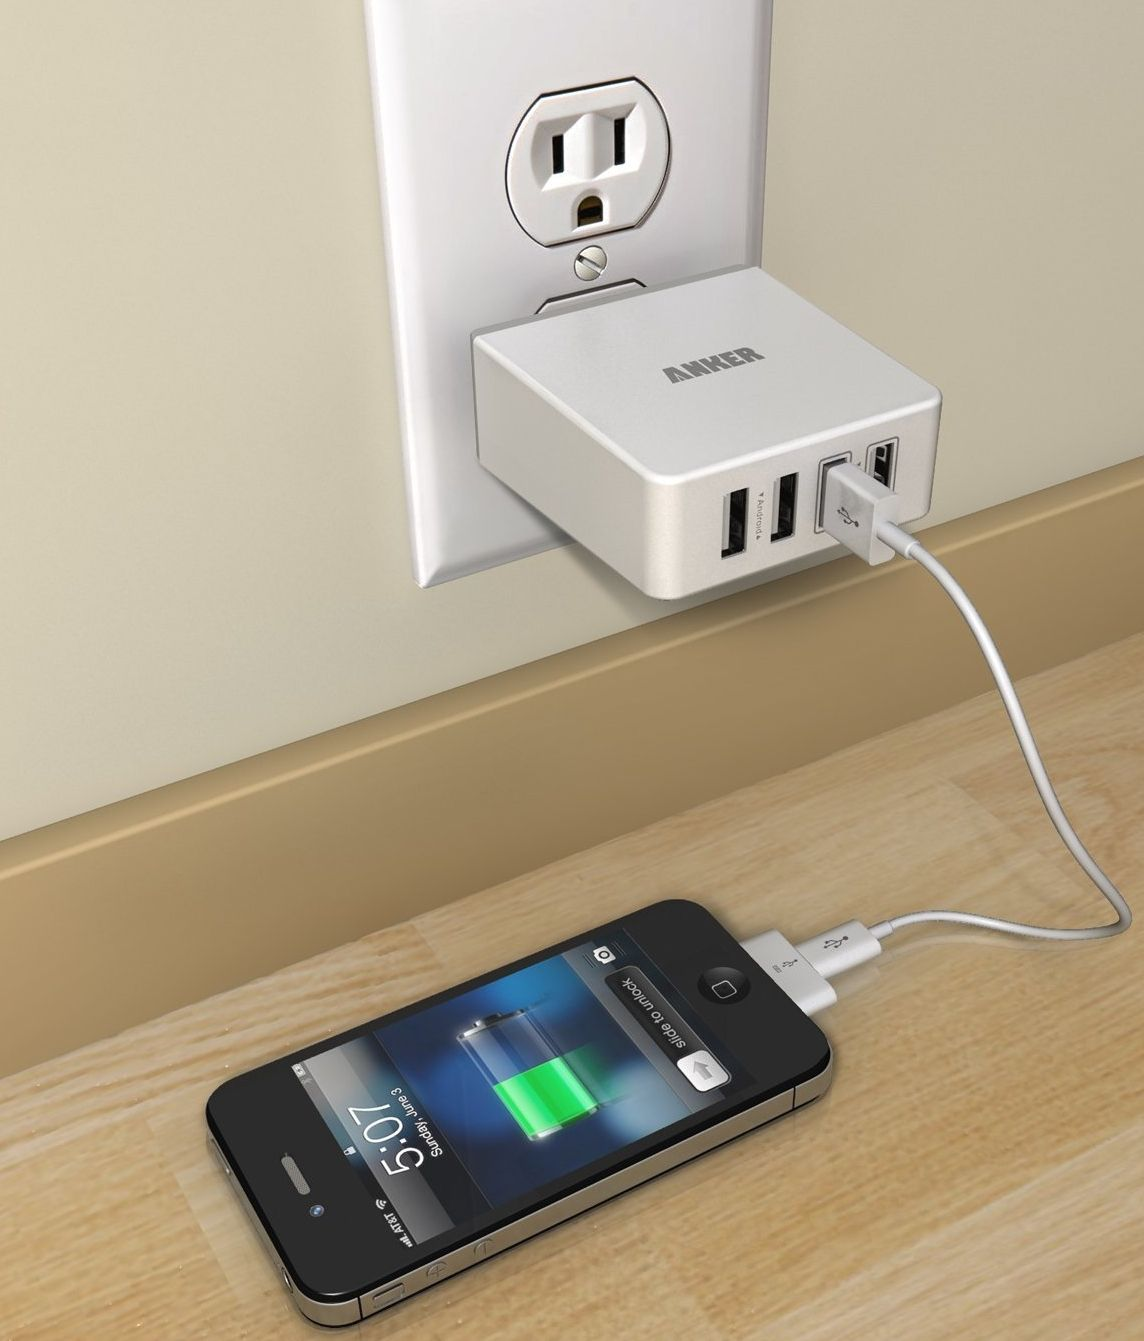 36W/7.2A Quad-Port Compact USB Wall Charger